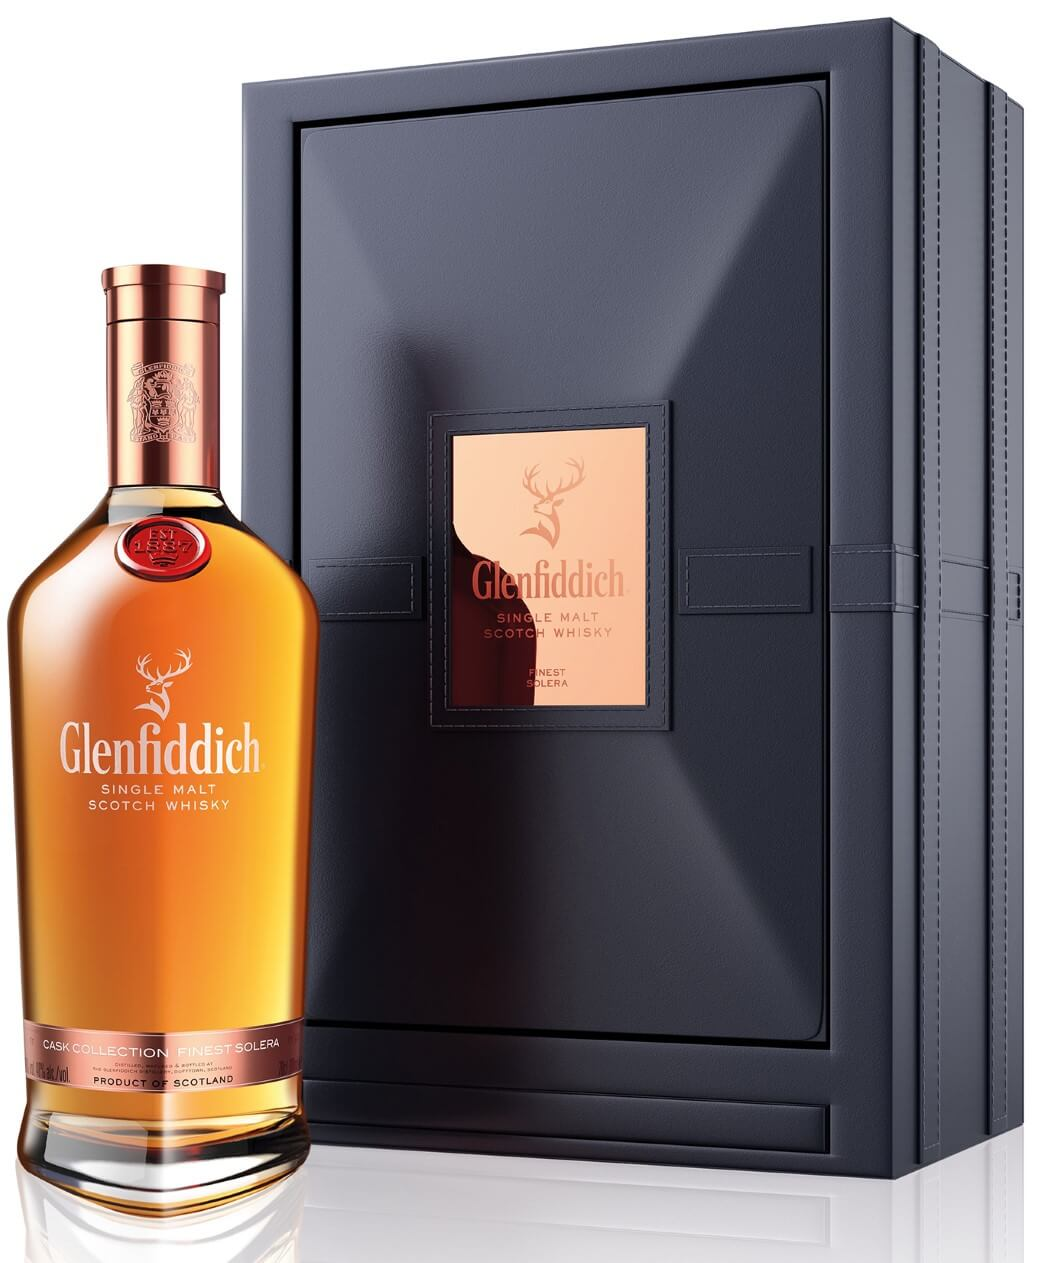 The Glenfiddich Cask Collection